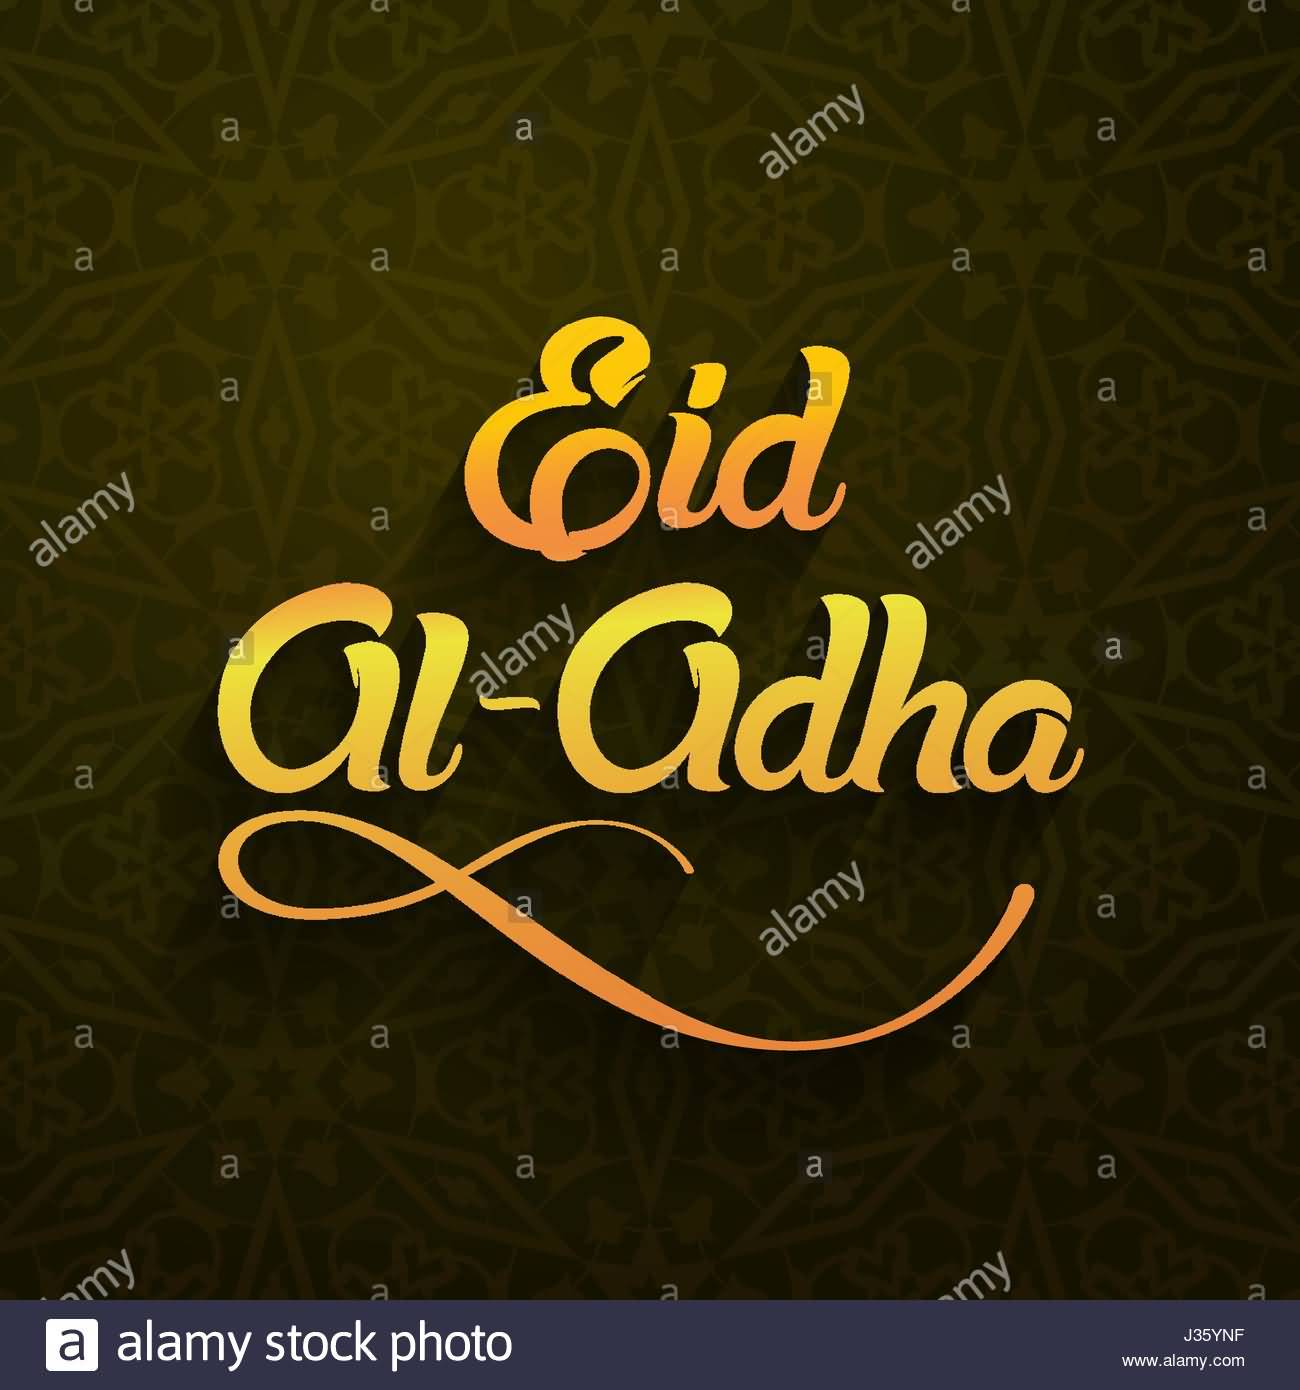 50 best ideas about eid al adha on askideas eid al adha 2017 greetings illustration kristyandbryce Choice Image